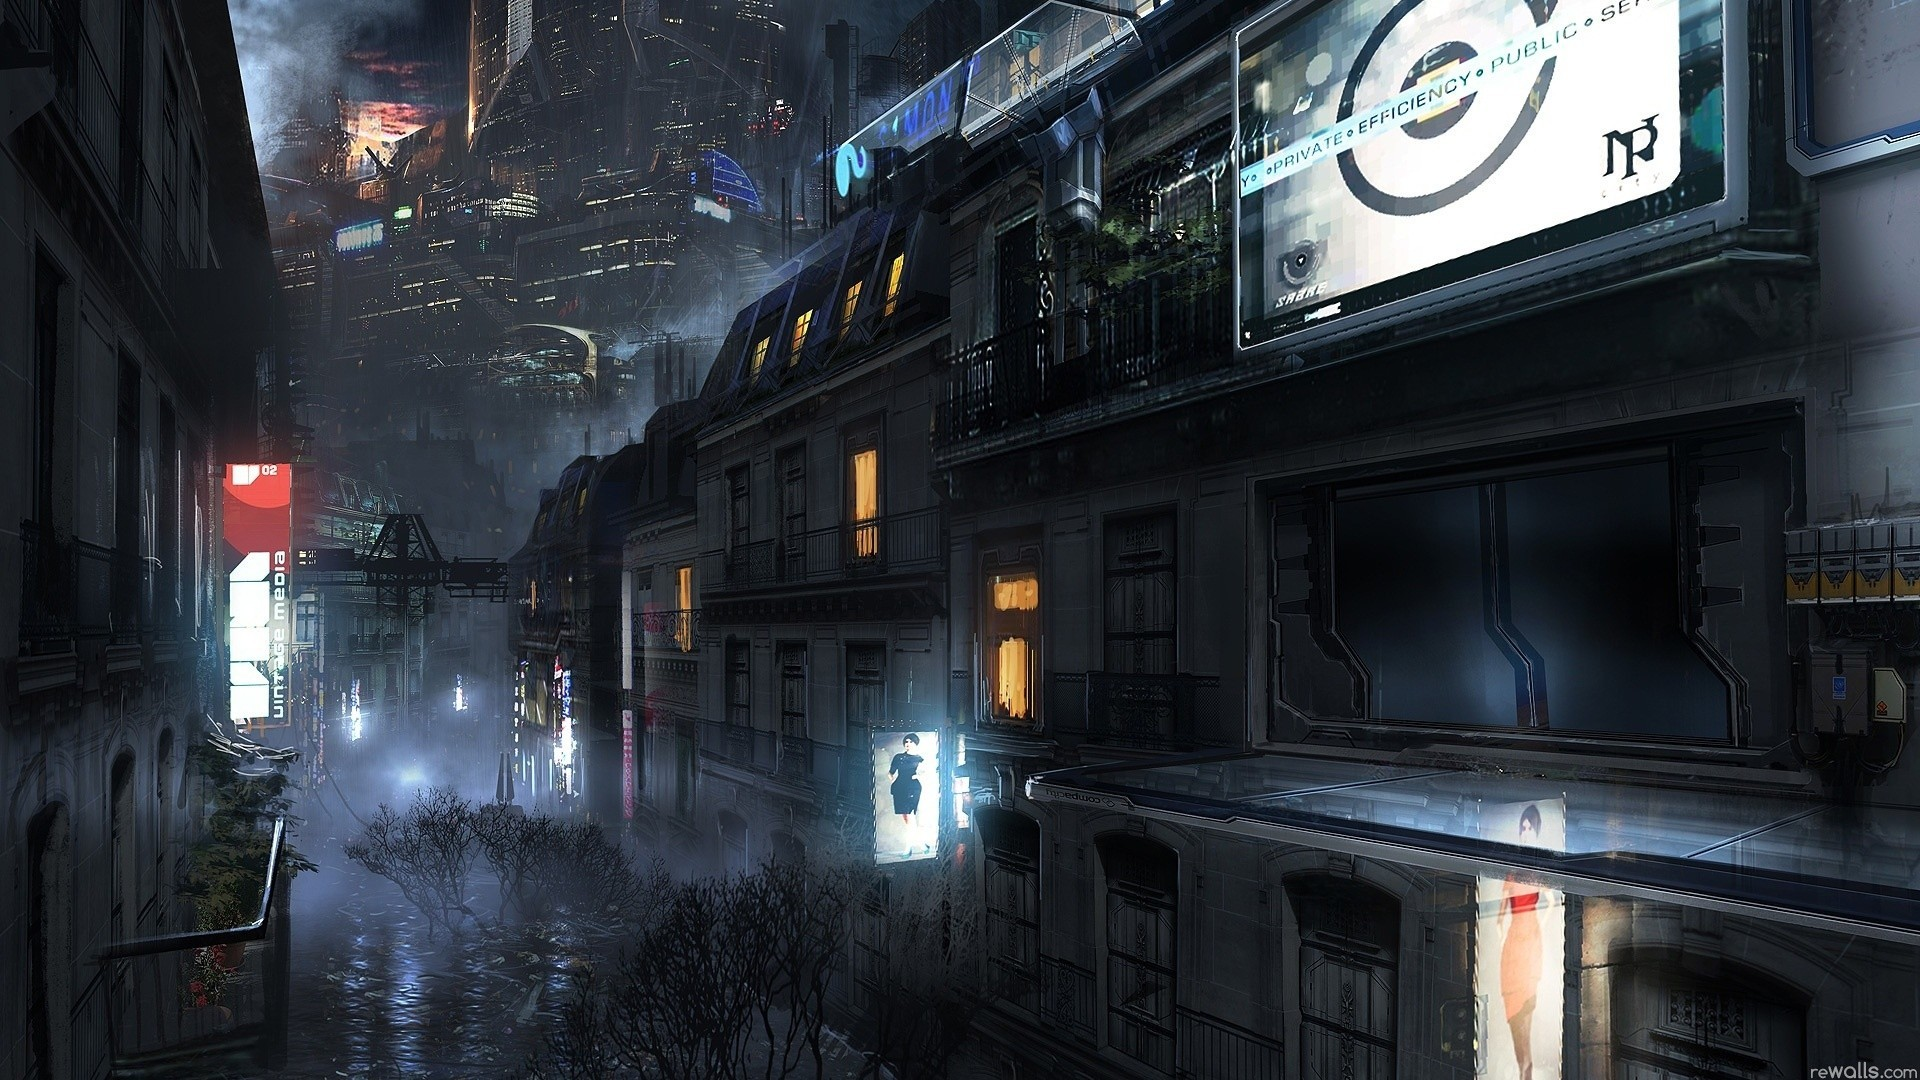 Res: 1920x1080, Futuristic Images Wallpapers : Other Wallpaper - LocaLwom